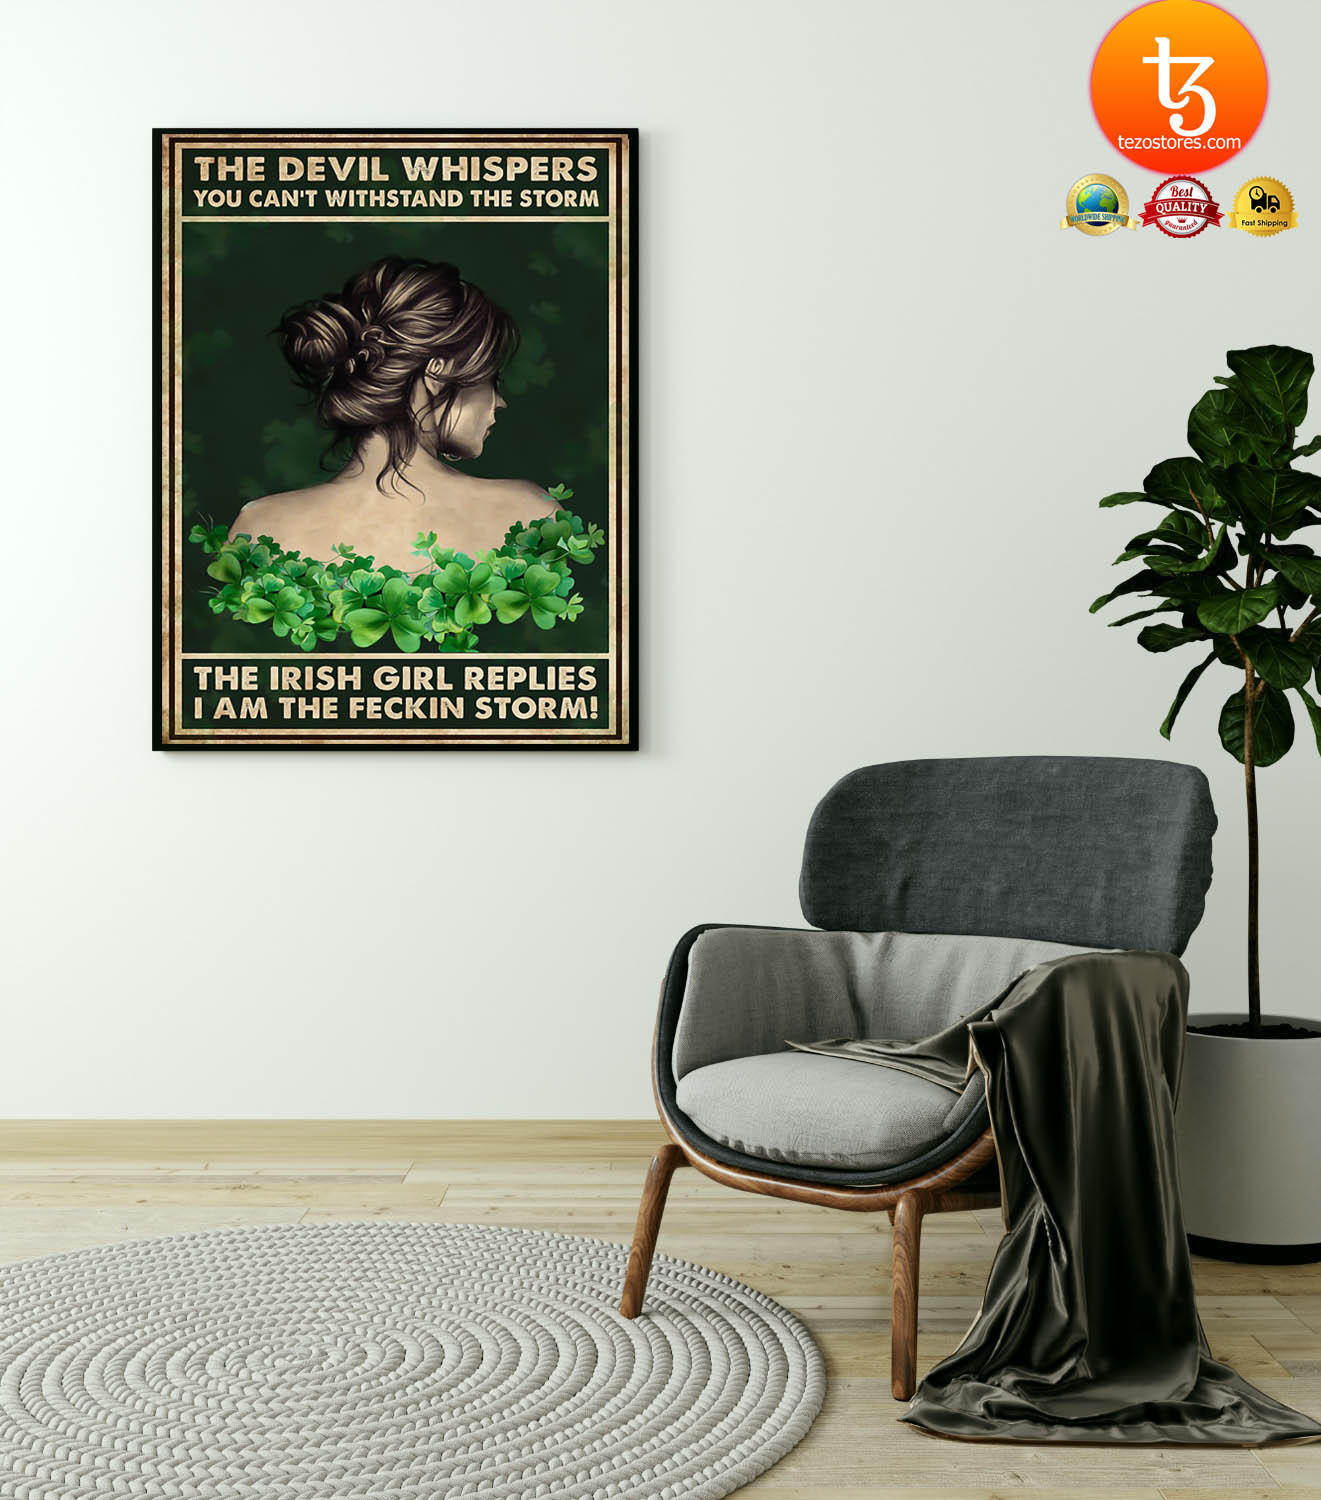 Irish girl The devil whispers you can't withstand the storm poster 11